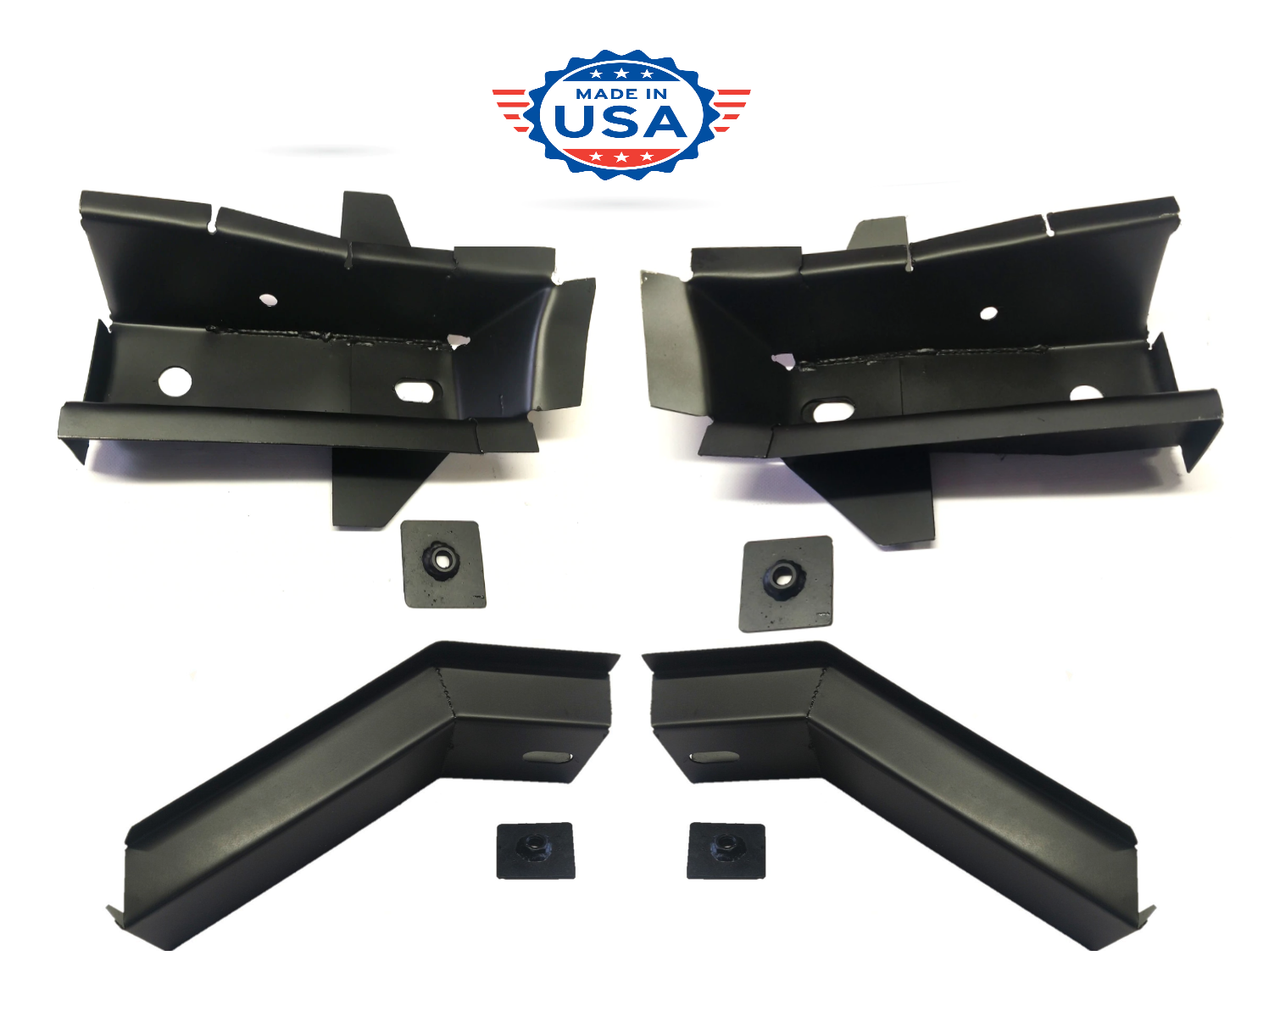 1972-1993 Dodge Ram & Ramcharger Front & Rear Cab Mount Set (4 Piece Set)